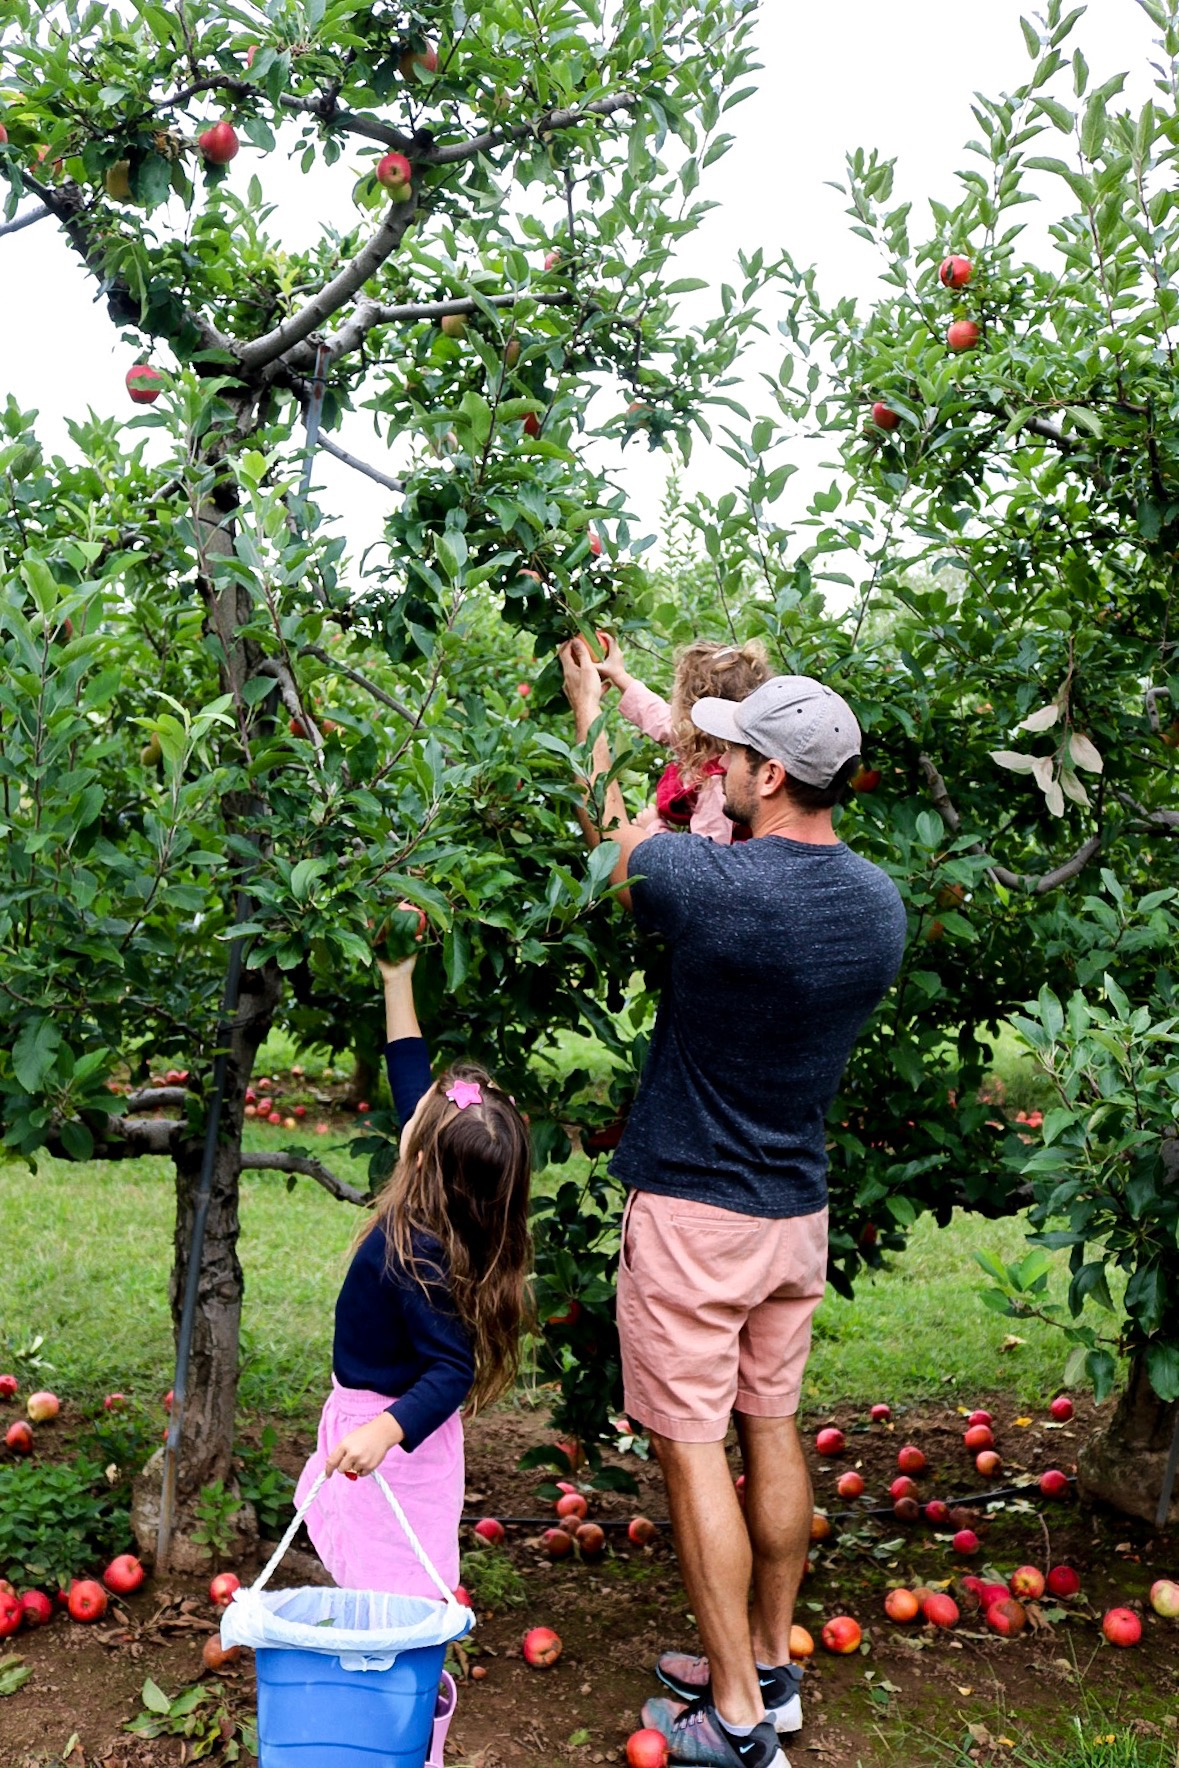 Dad helping daughters pick apples from tree